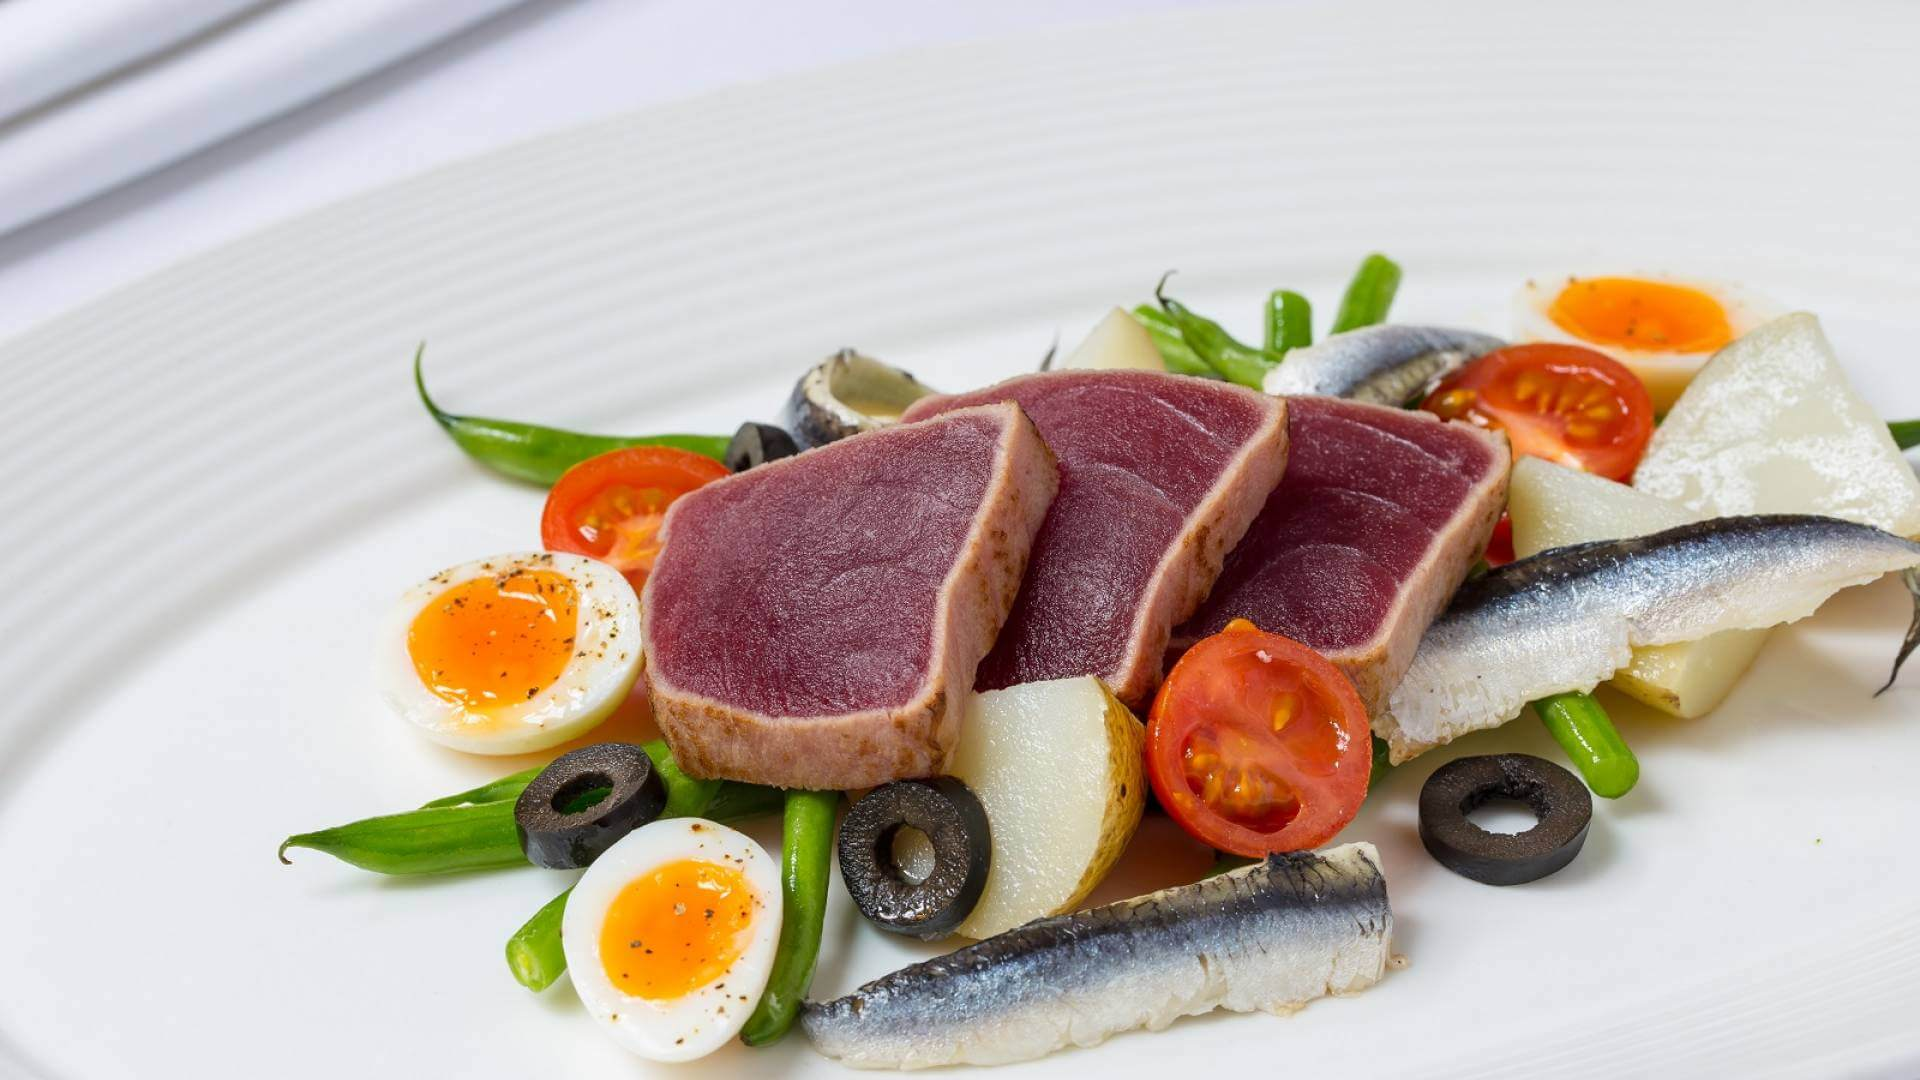 mother s day restaurant specials, mother day deals restaurants, mother day special offers restaurants, restaurants mother day specials, mother day restaurant specials, mothers day restaurant, mothers day restaurant deals, mother day restaurant deals, mother's day in London, mothers day in London, mother's day, mother's day 2016, mother's day 2016 London